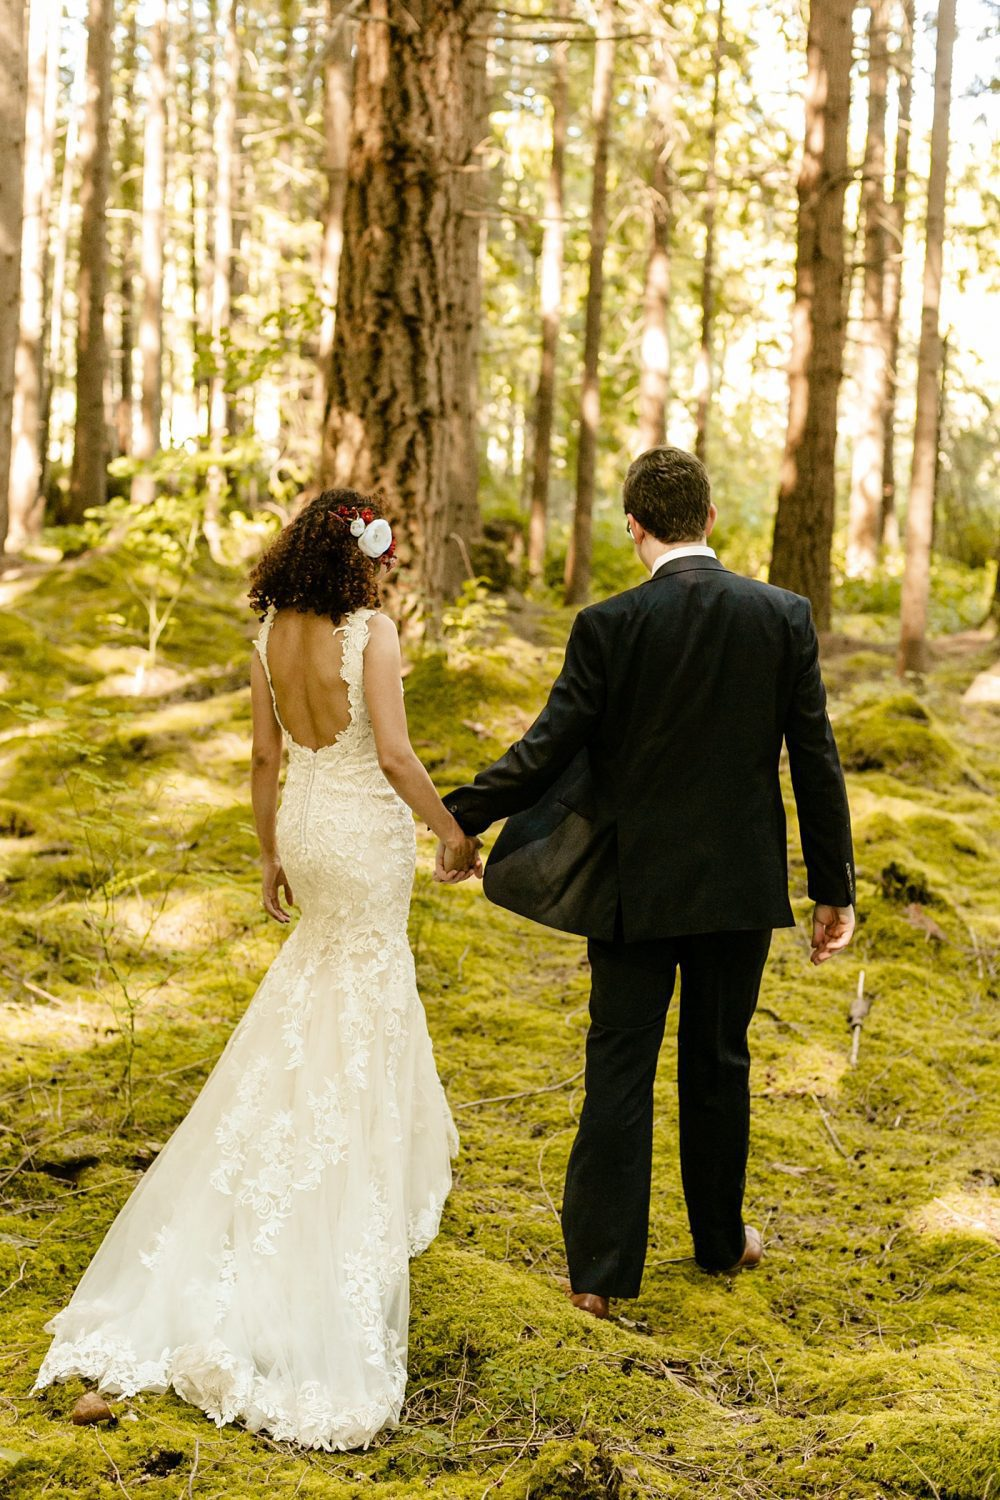 How To Choose The Best Wedding Vendors emerald forest wedding venue photographer bride and groom walking together on moss covered ground in the woods